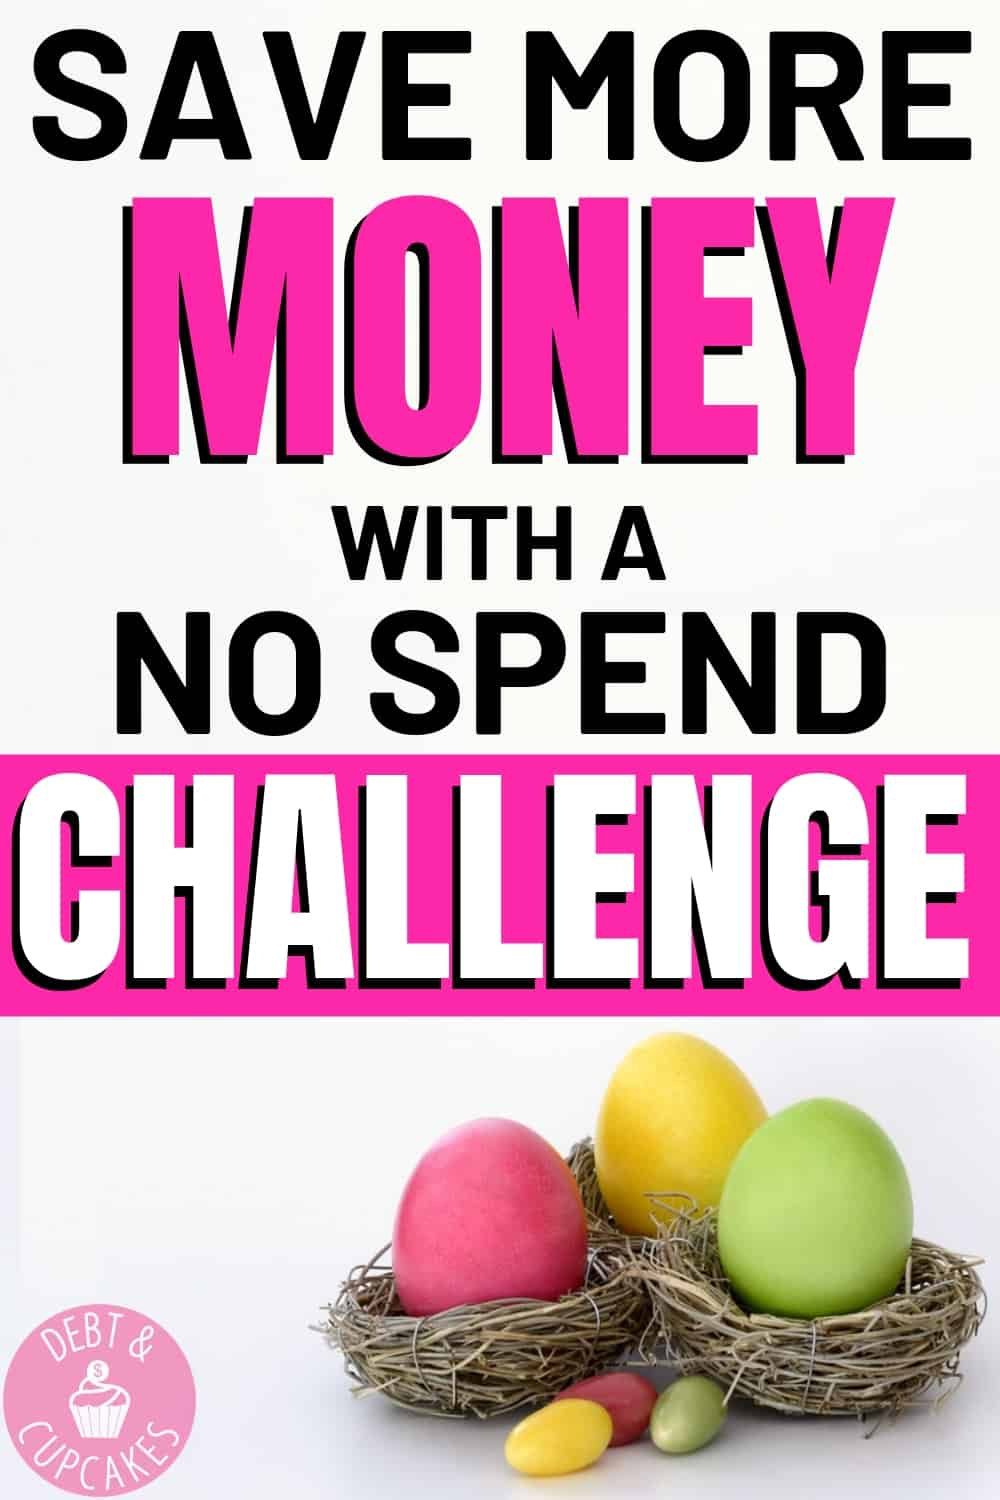 Save Money With a No Spend Challenge